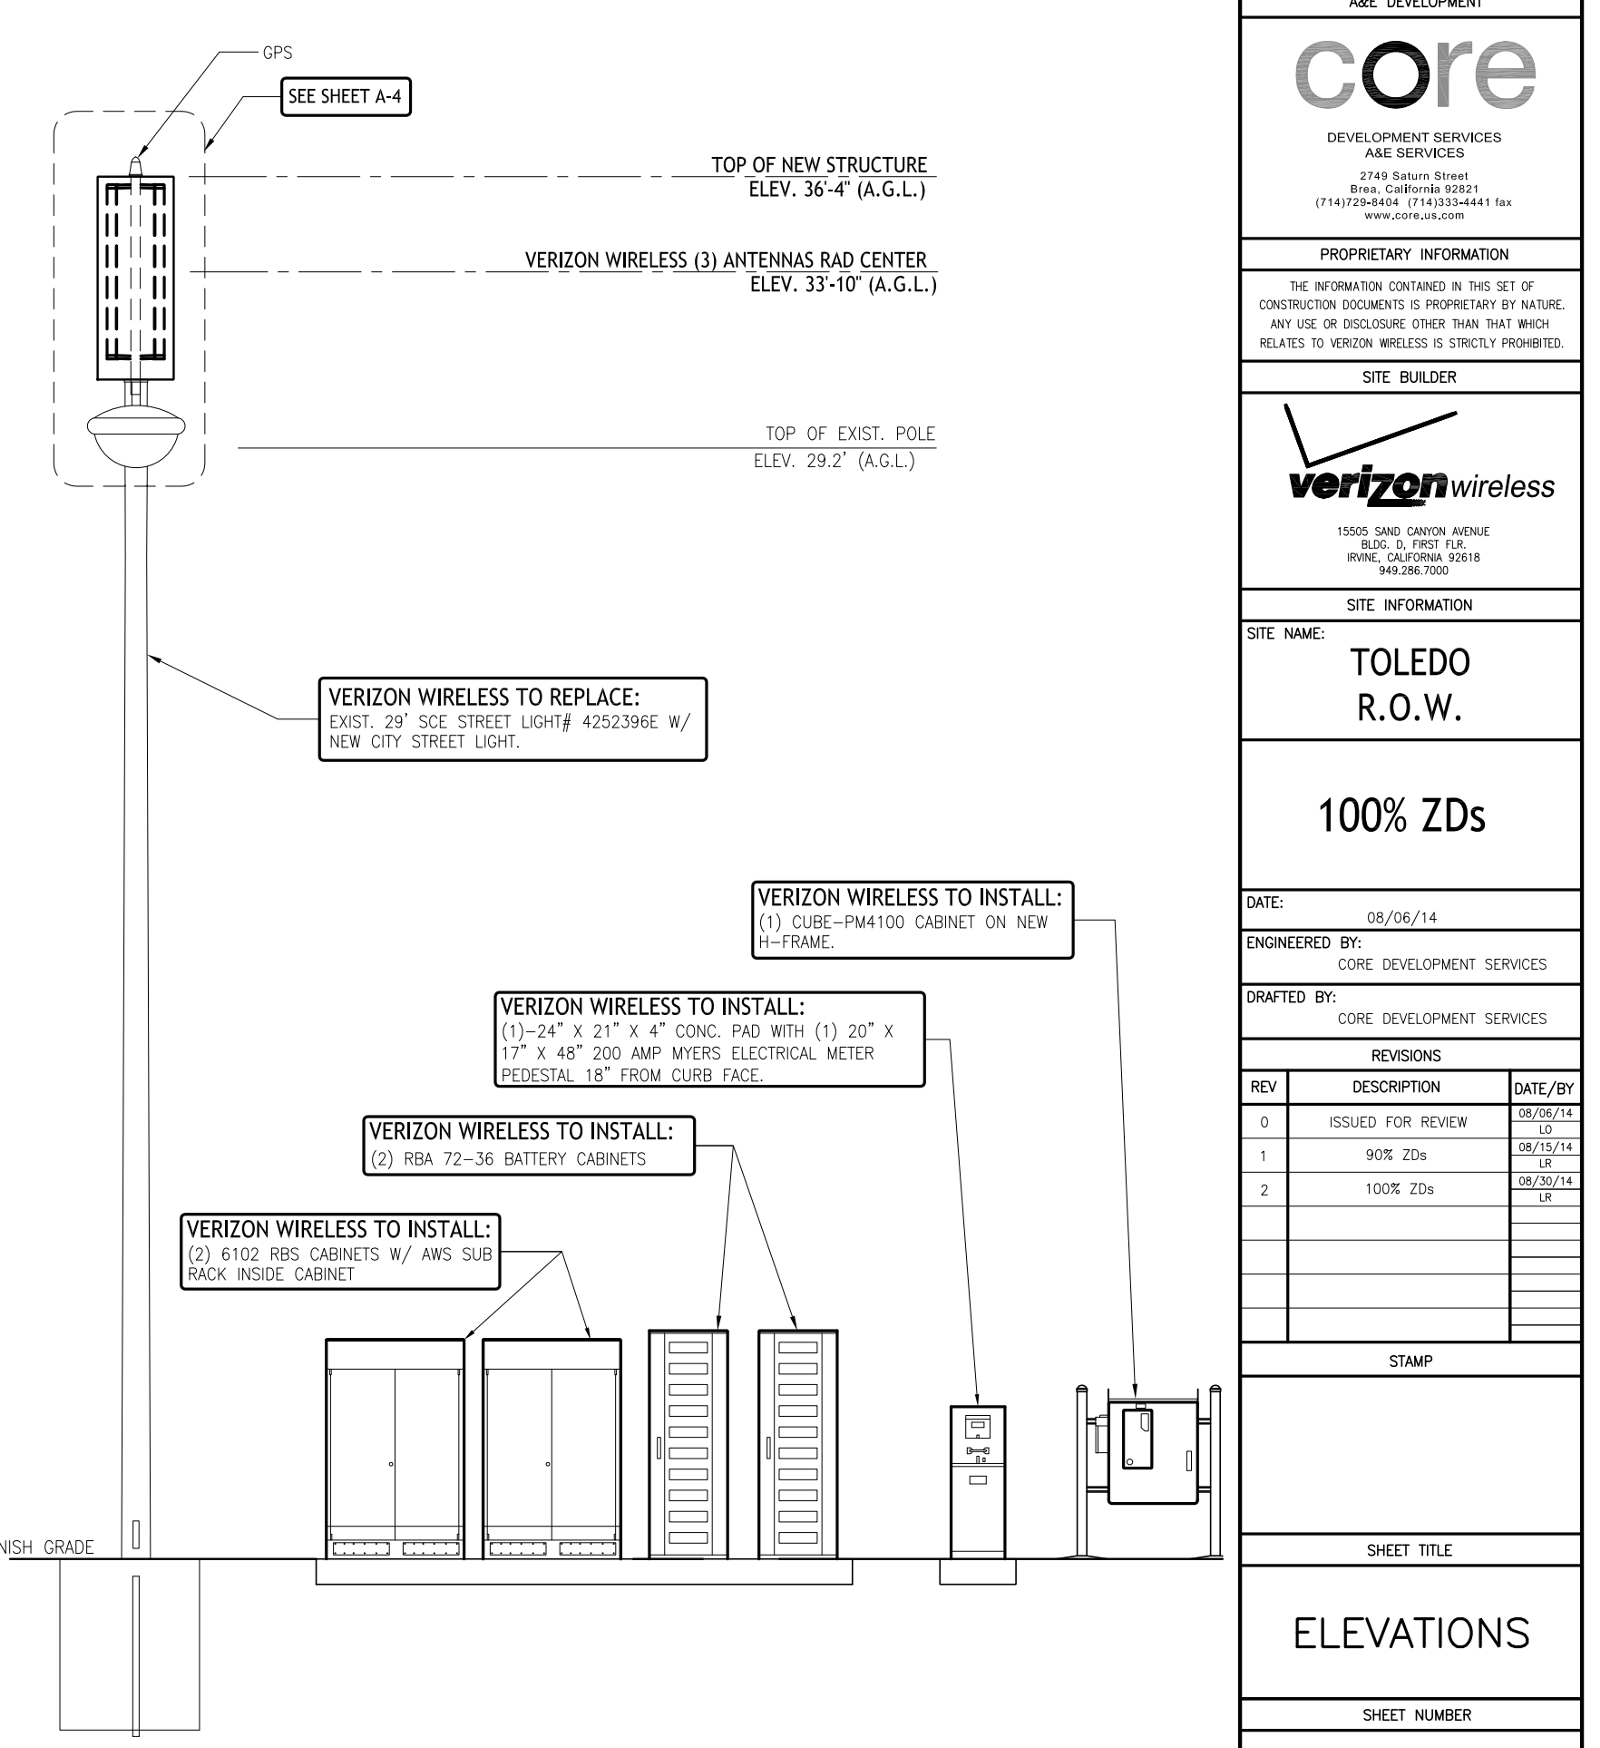 Apart 2 Example Photos Of The Good Bad And Downright Ugly Verizon Wireless Wiring Diagram An Unrealistic Inappropriate Proposal For A Small Cell On Nicely Landscaped Street In South Orange County This Is More Quasi Macro